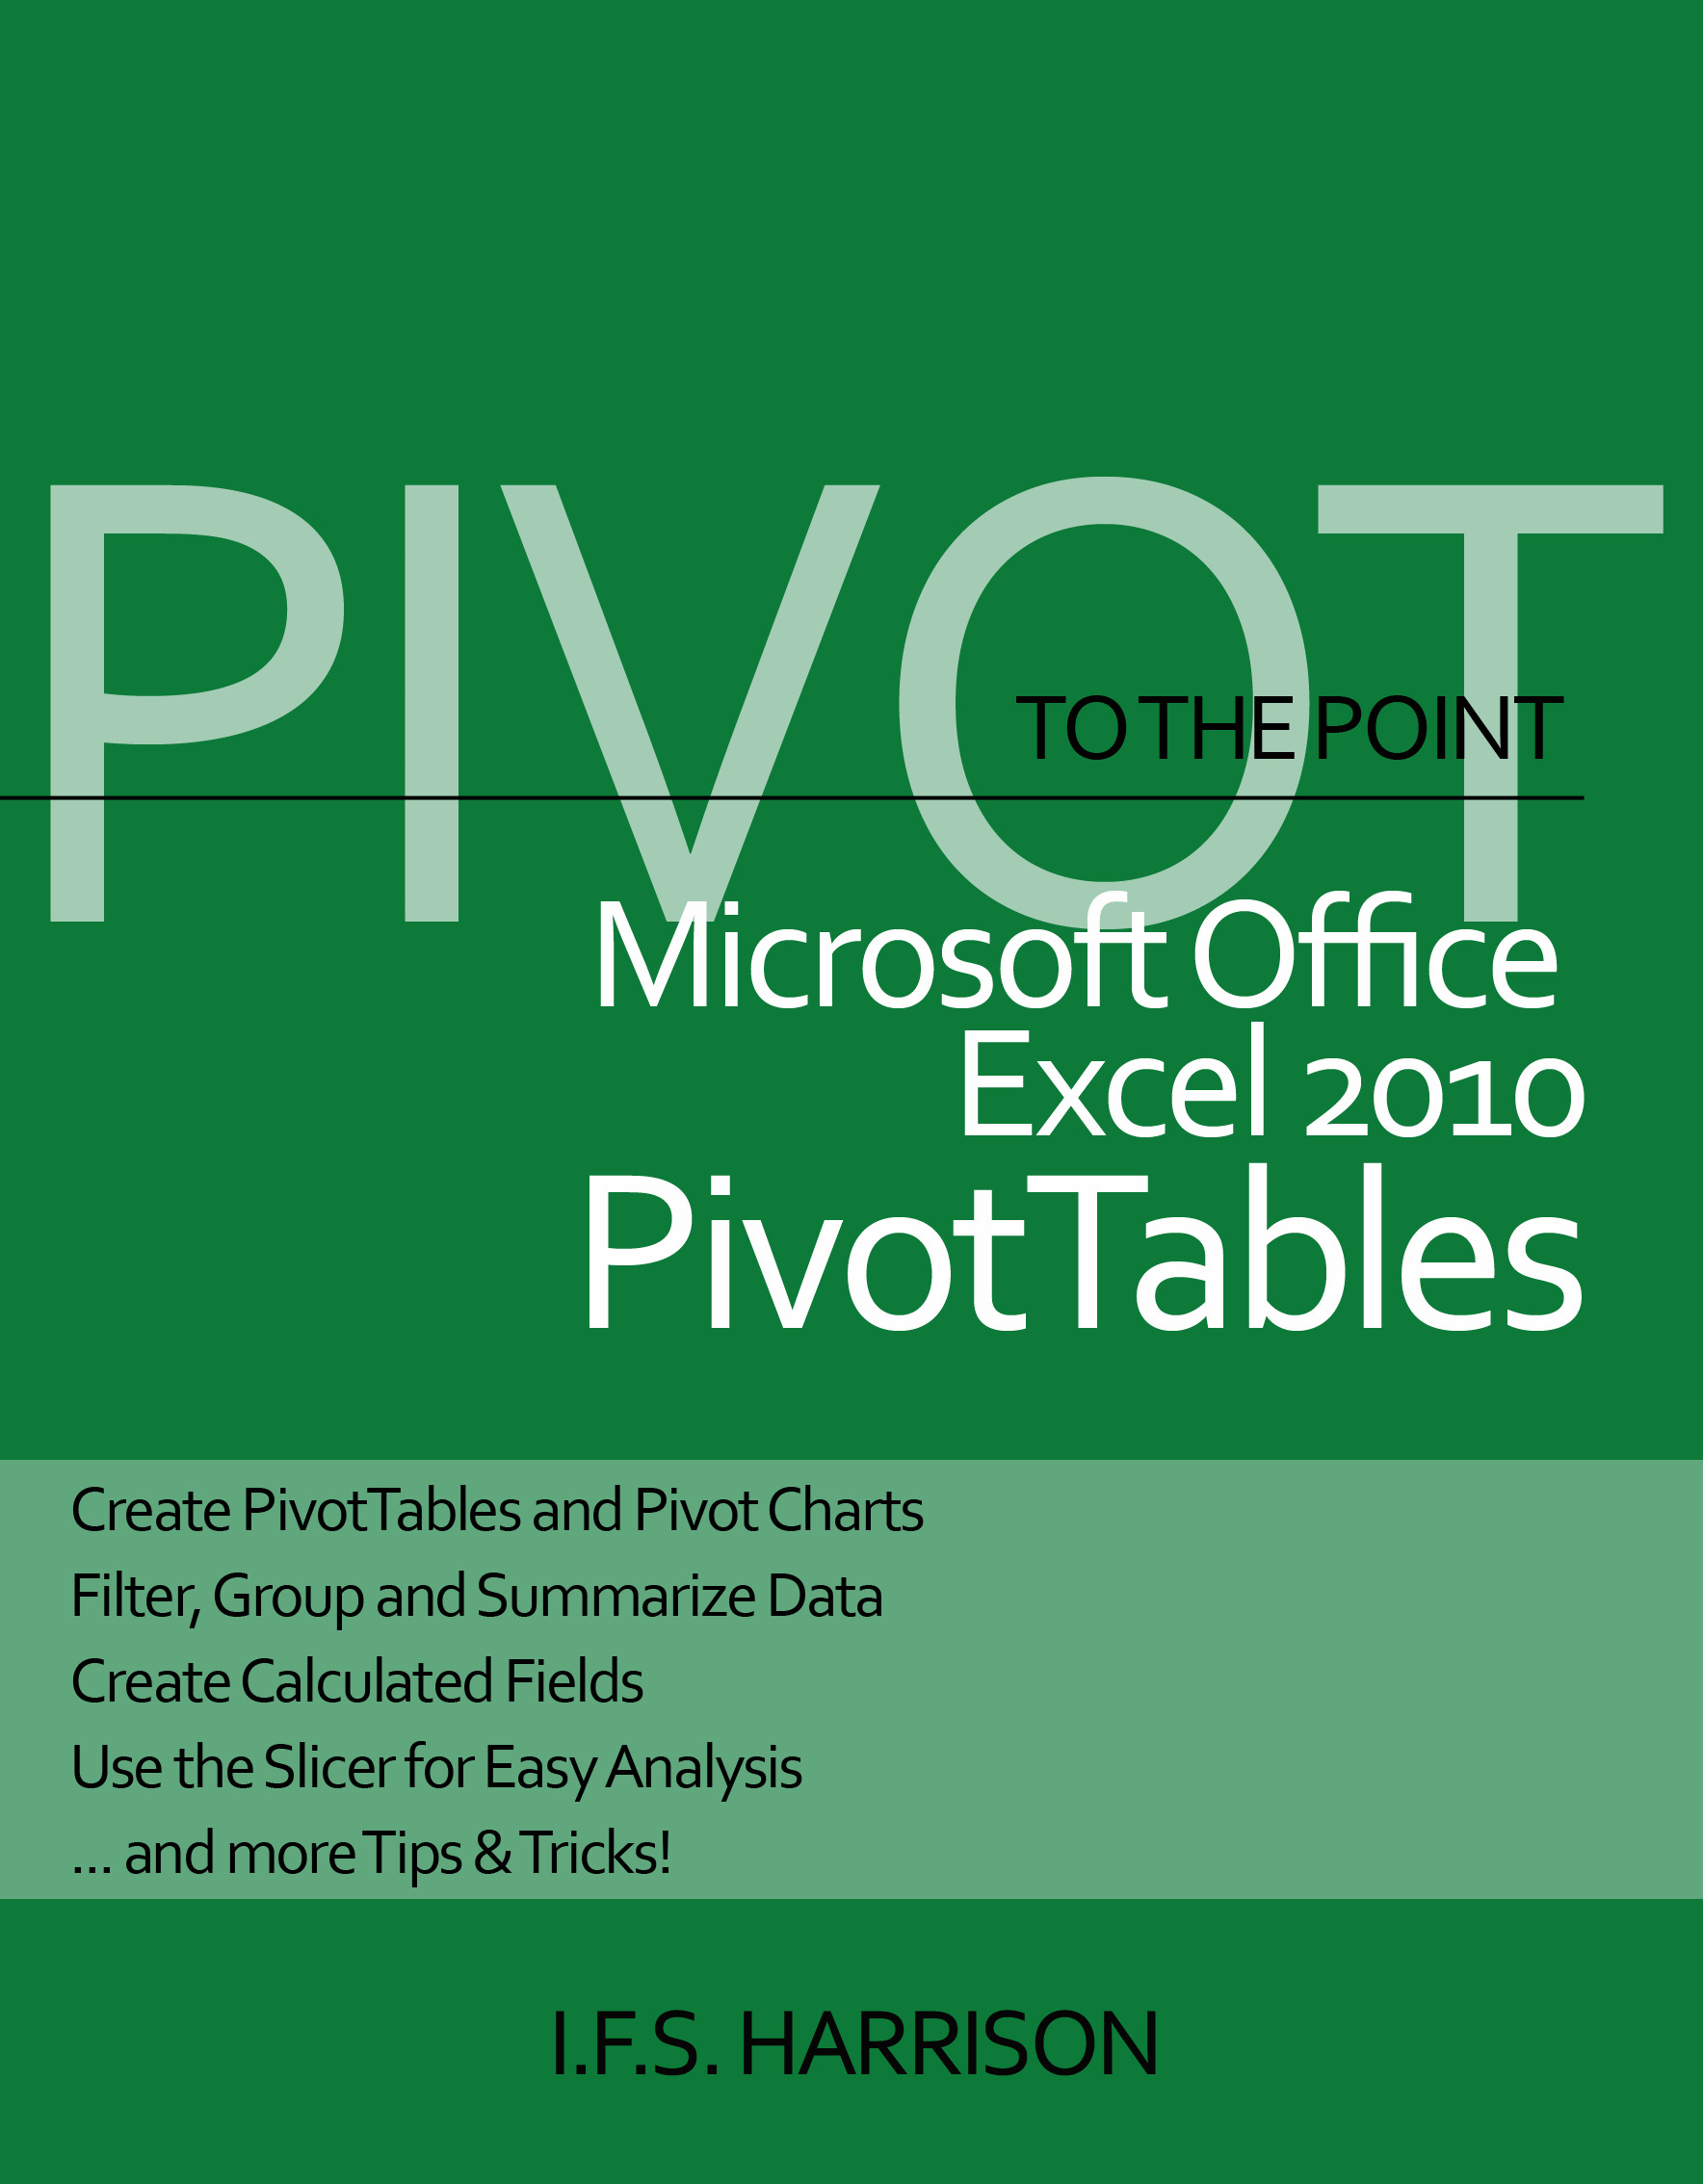 To The Point… Microsoft Office Excel 2010 PivotTables